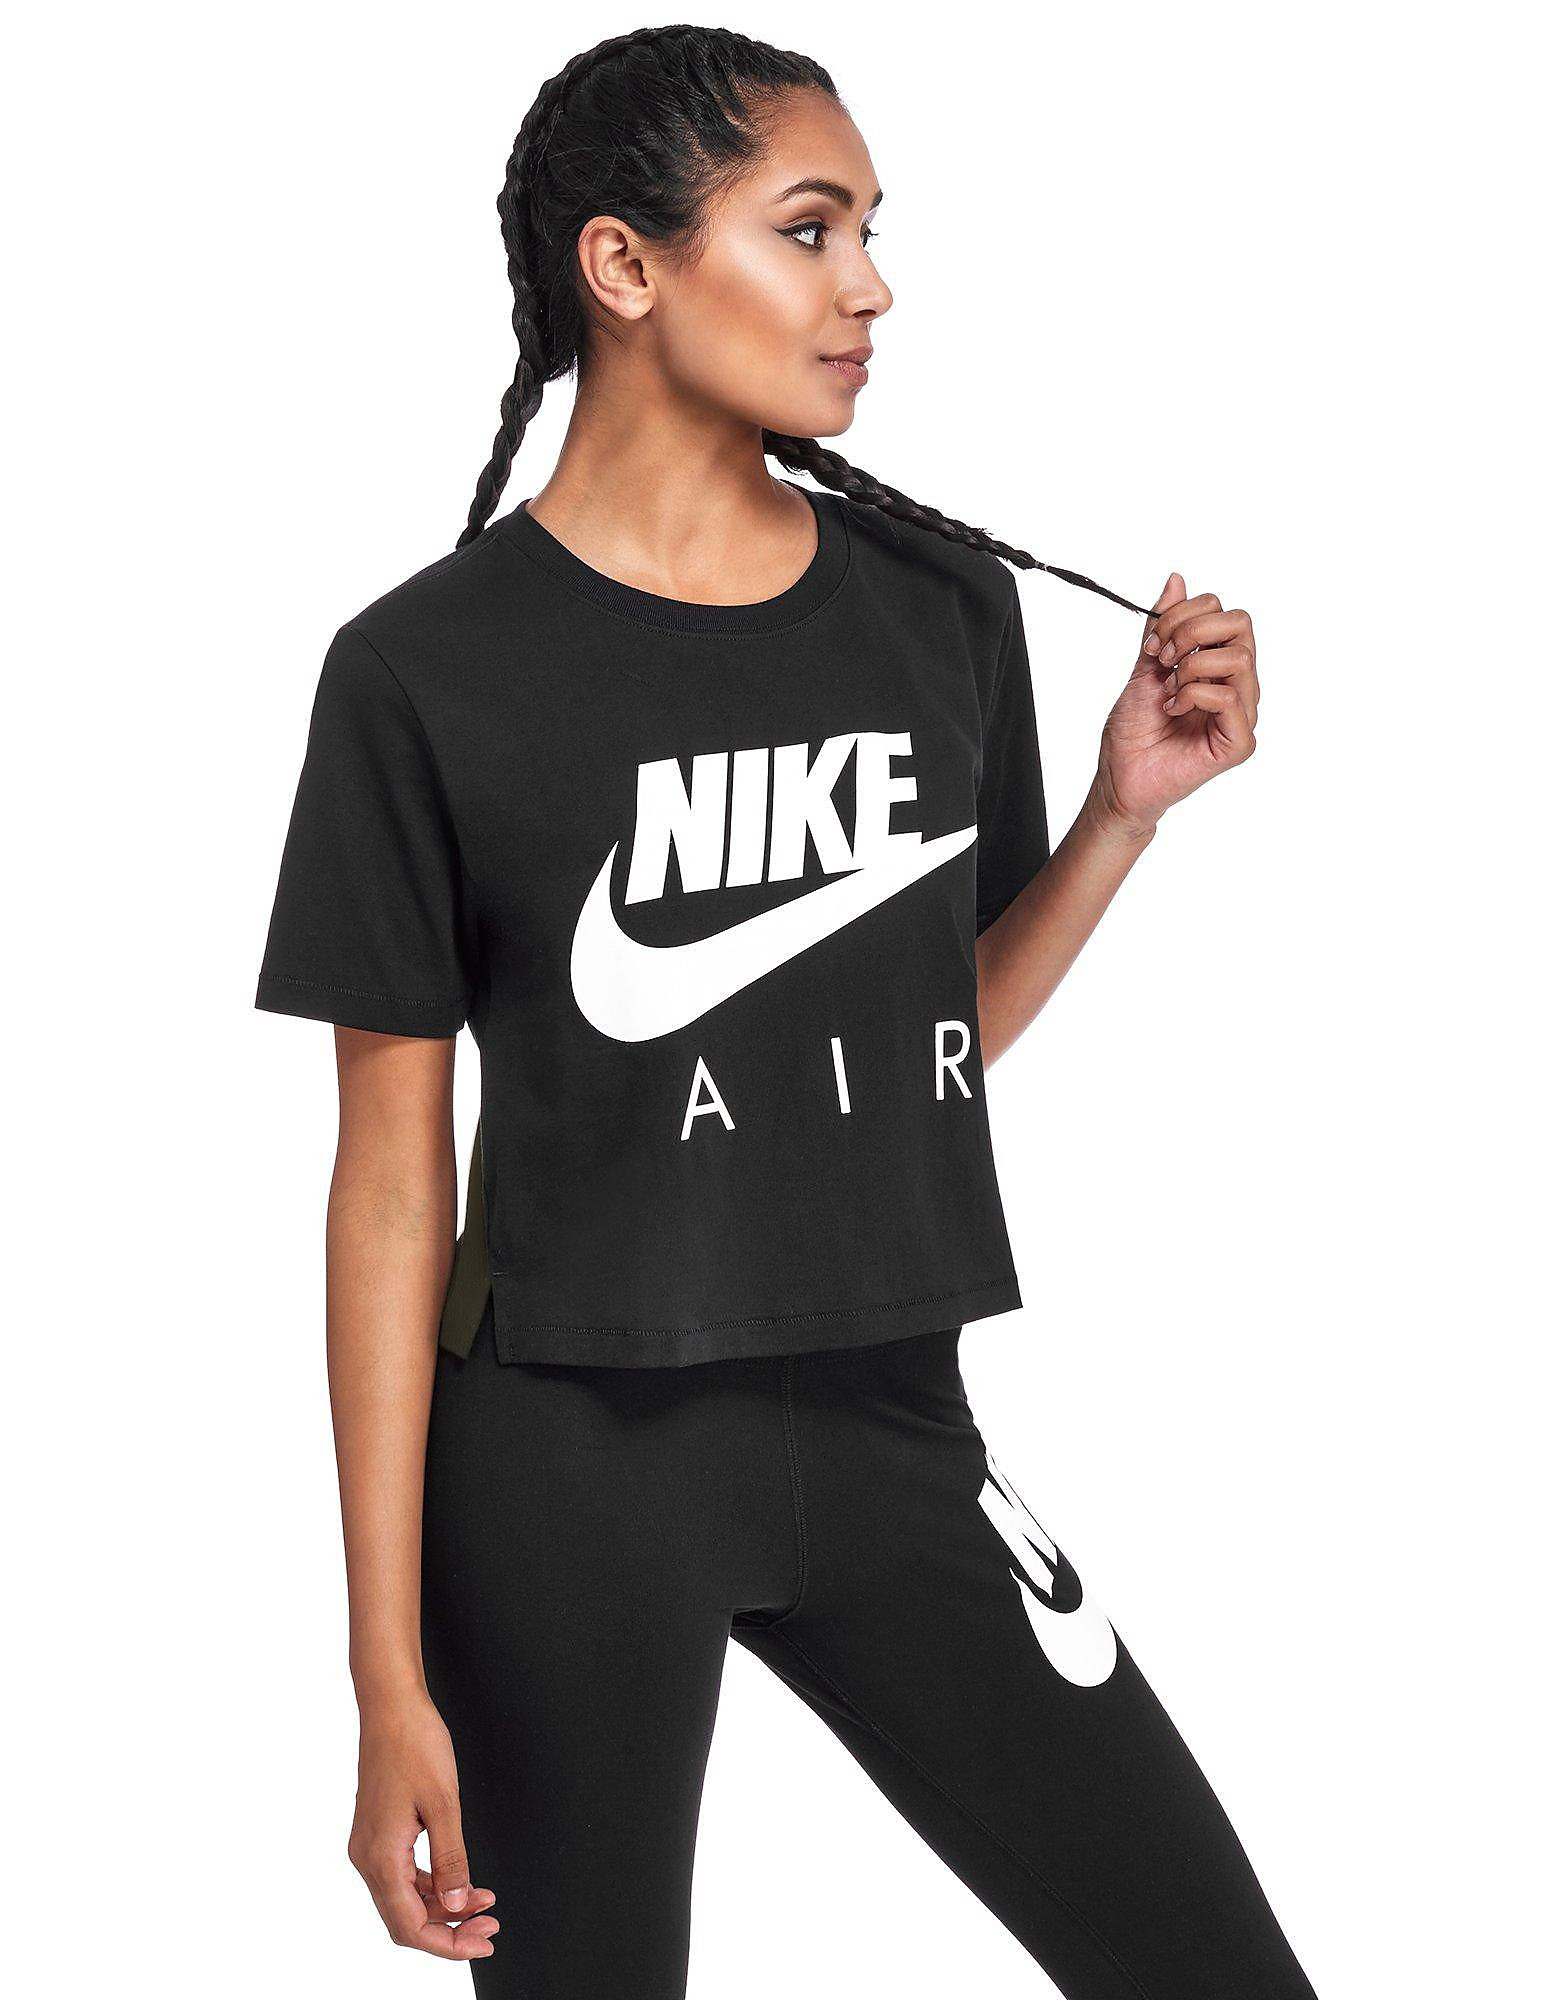 Nike Air Crop T-Shirt